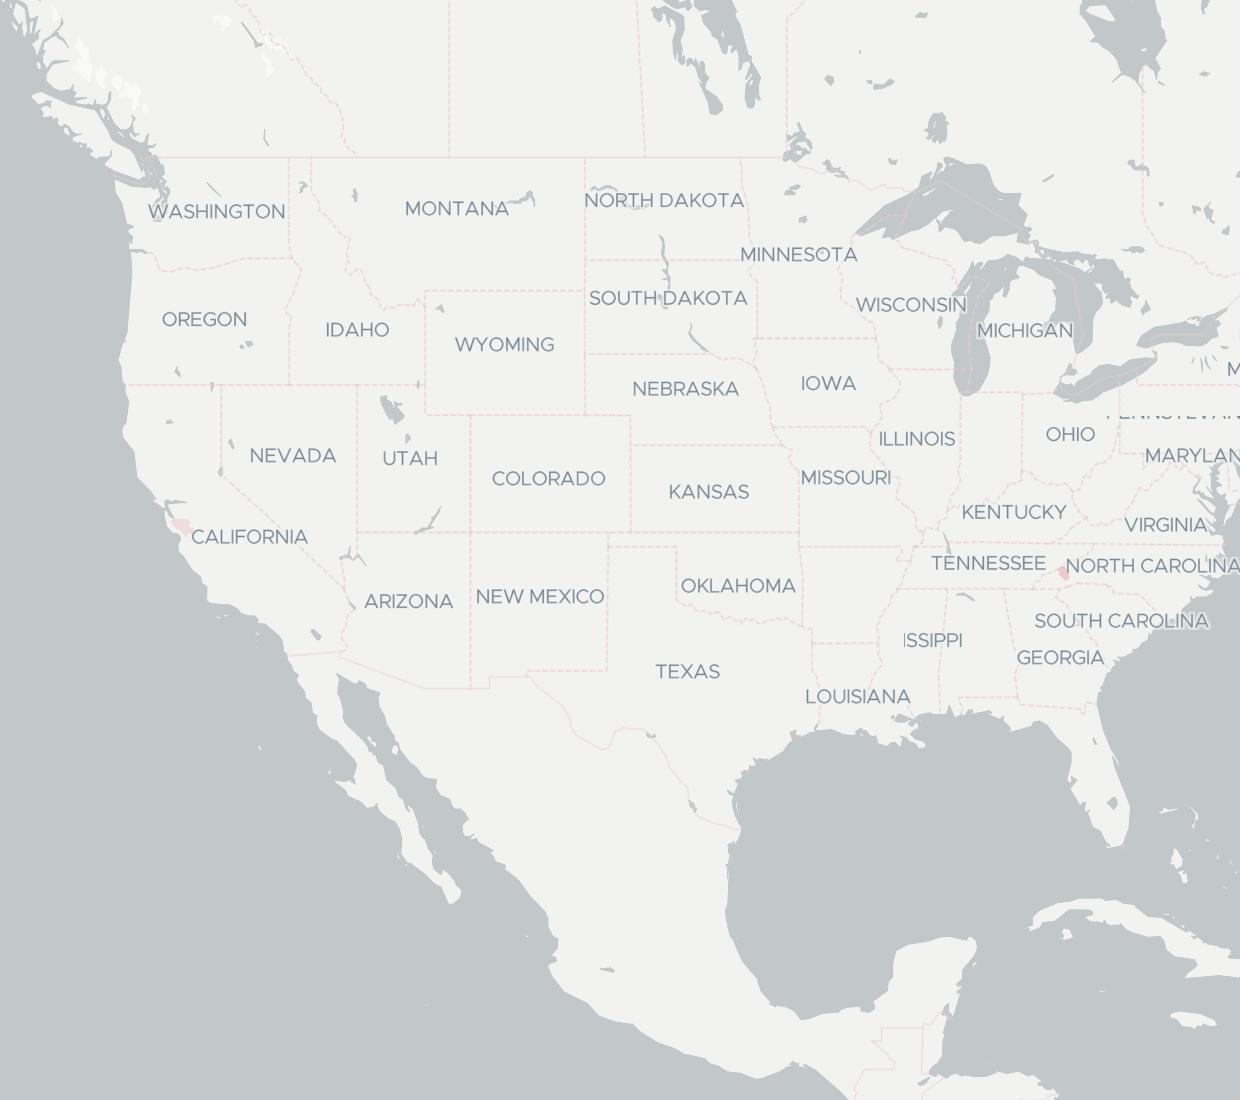 Carolina Mountain Cablevision Availability Map. Click for interactive map.